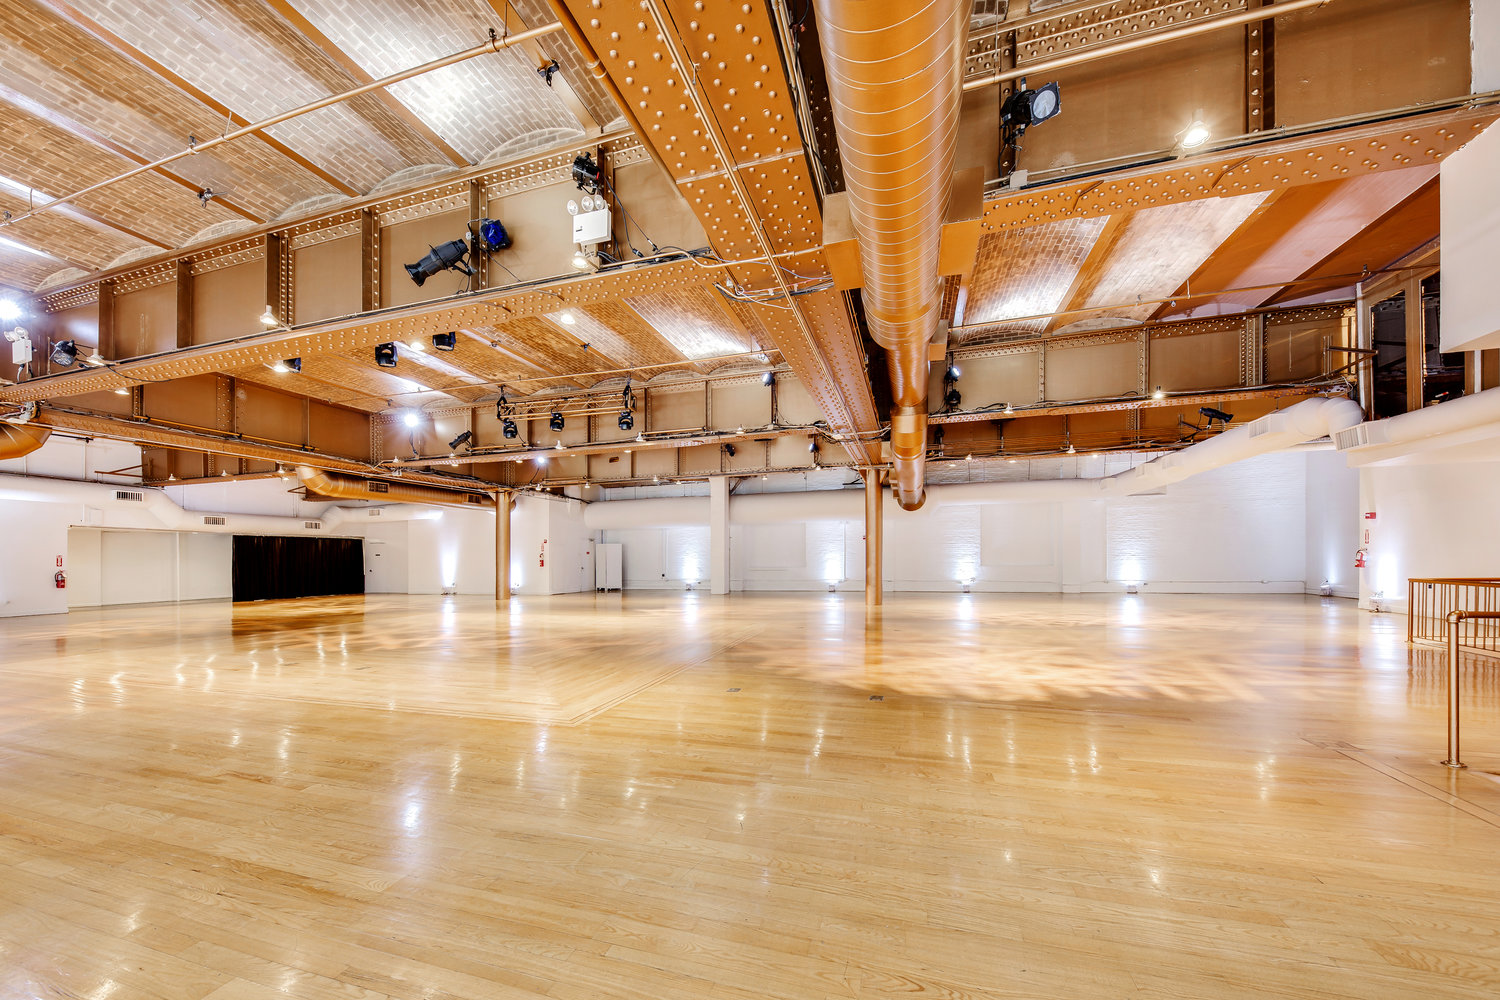 ALTMAN BUILDING - 13,000 square foot space located in Manhattan ideal for events and presentations, with a column-free space affording versatility